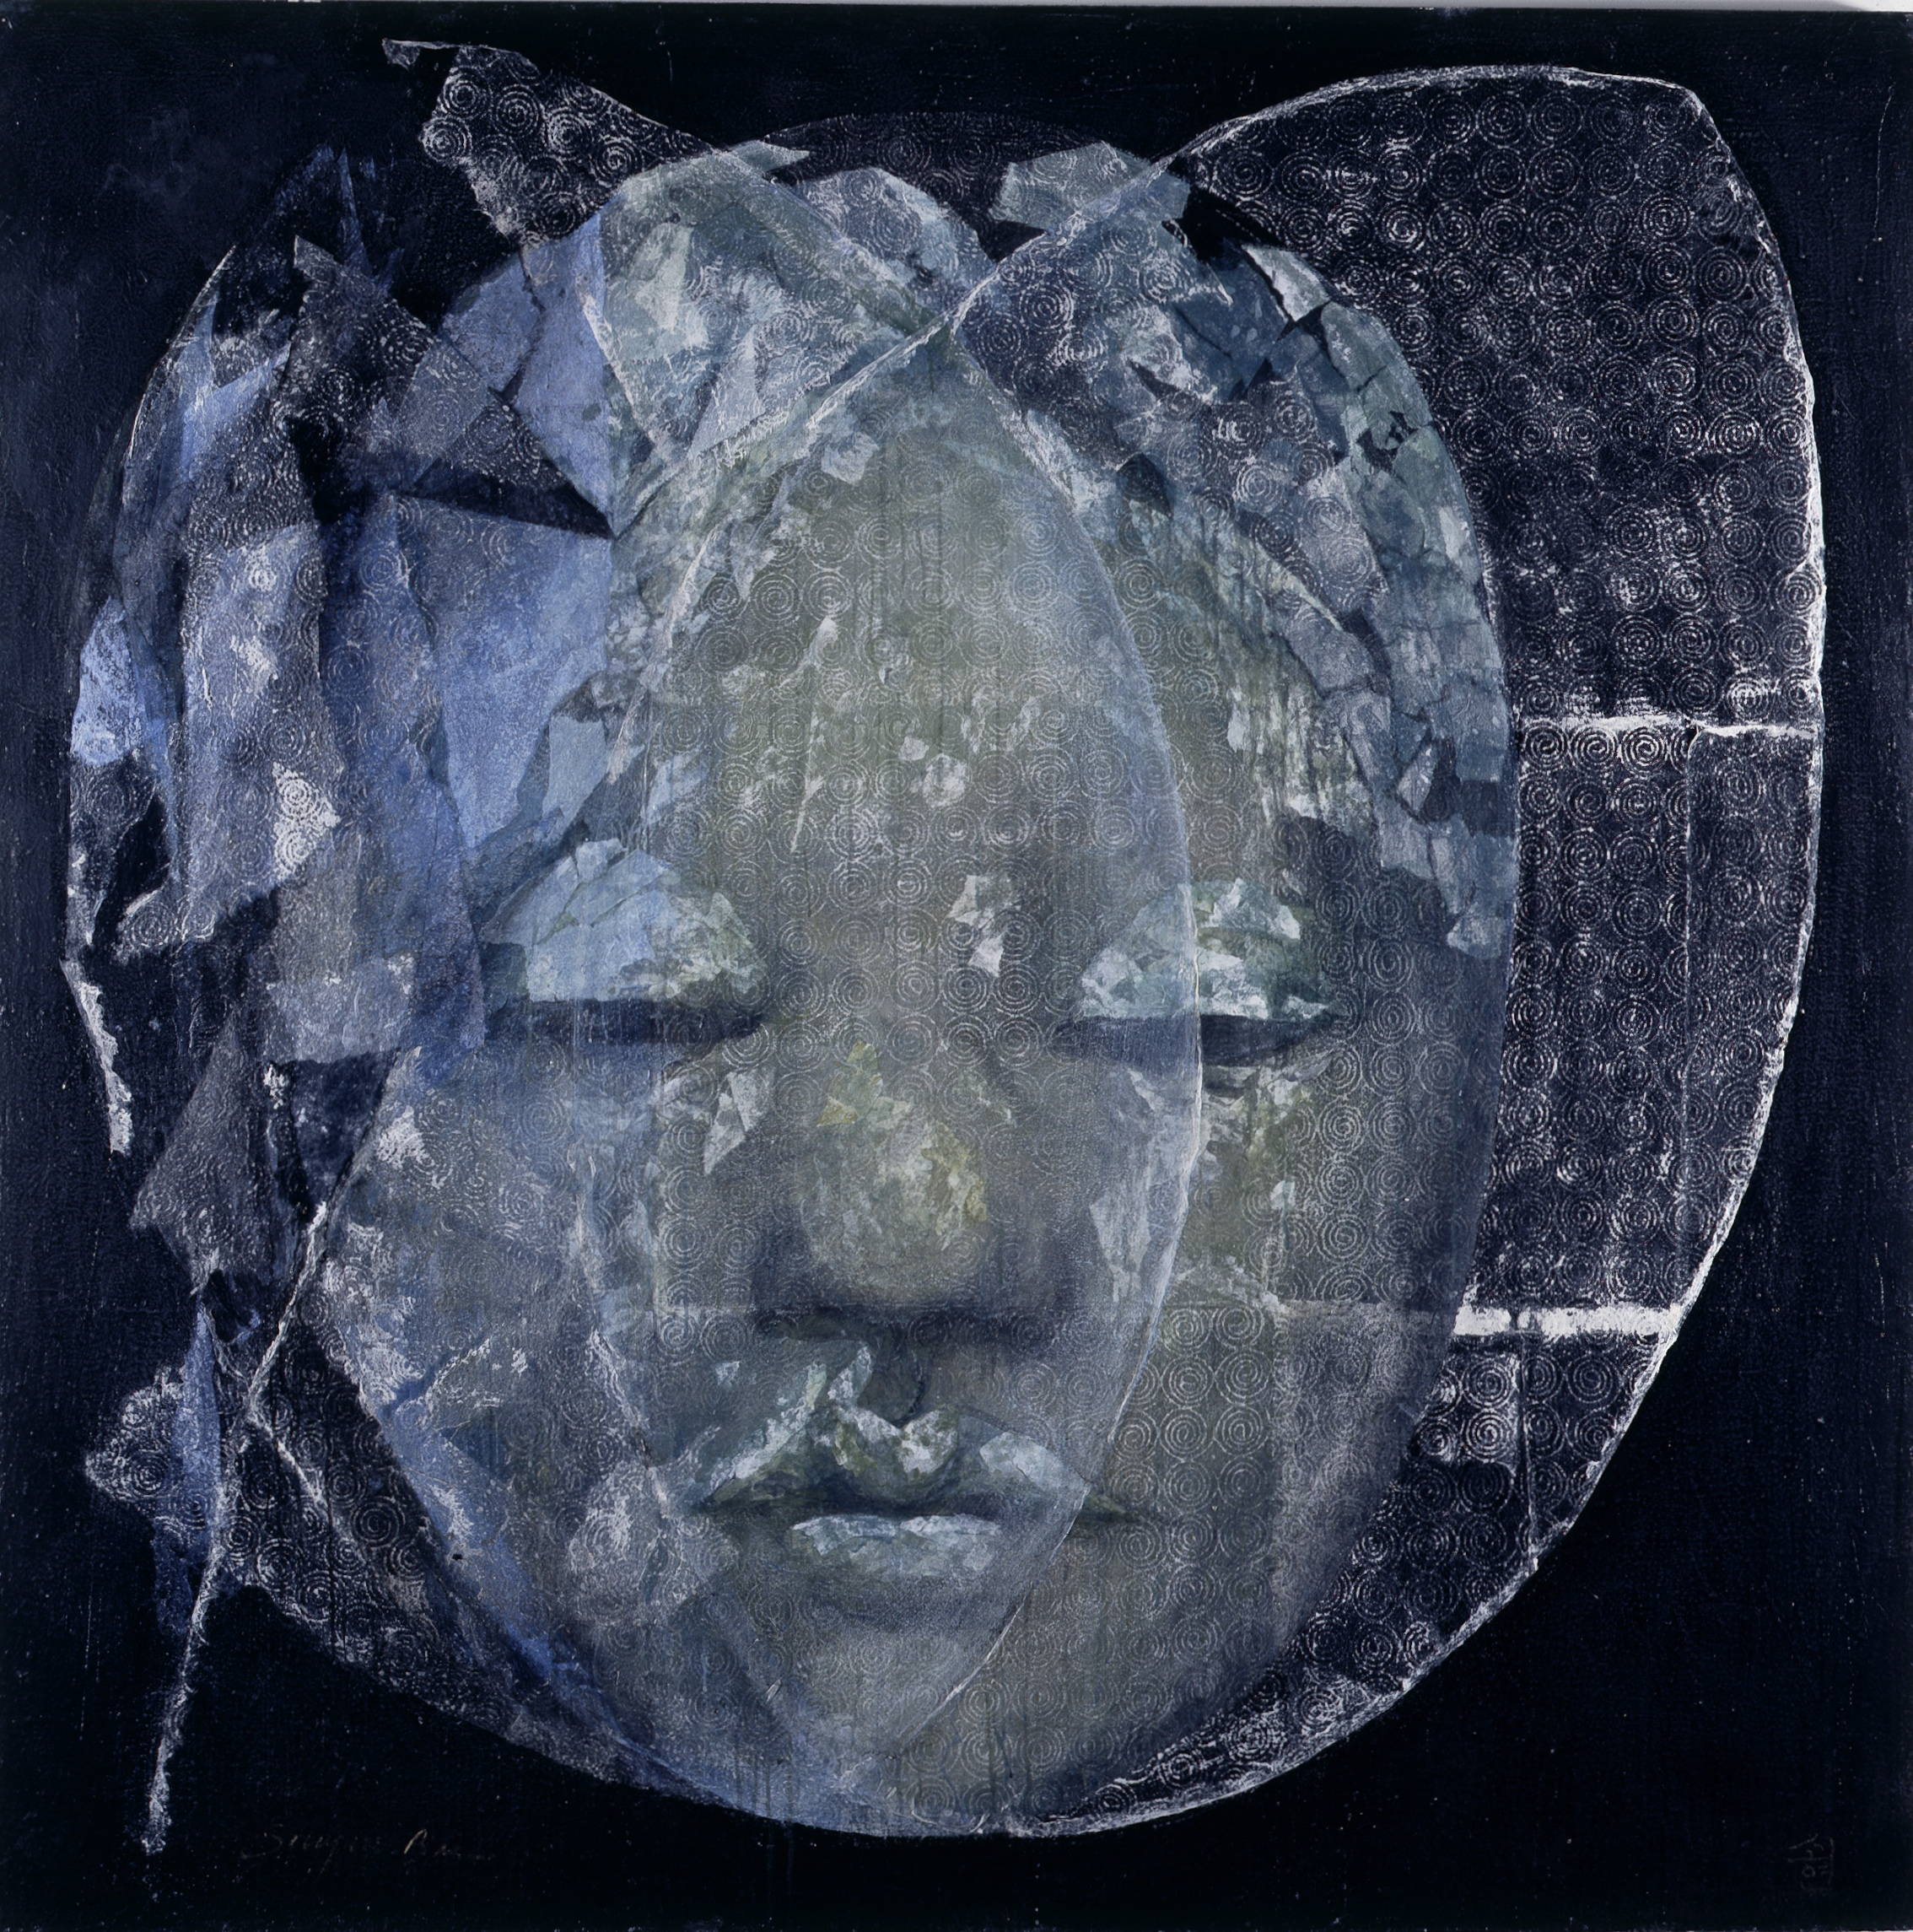 SoHyun Bae, A Woman of Josun Dynasty: Colossal Head III (Shim-Chung), 1998, rice-paper and pure pigment on canvas, 81 x 81 inches